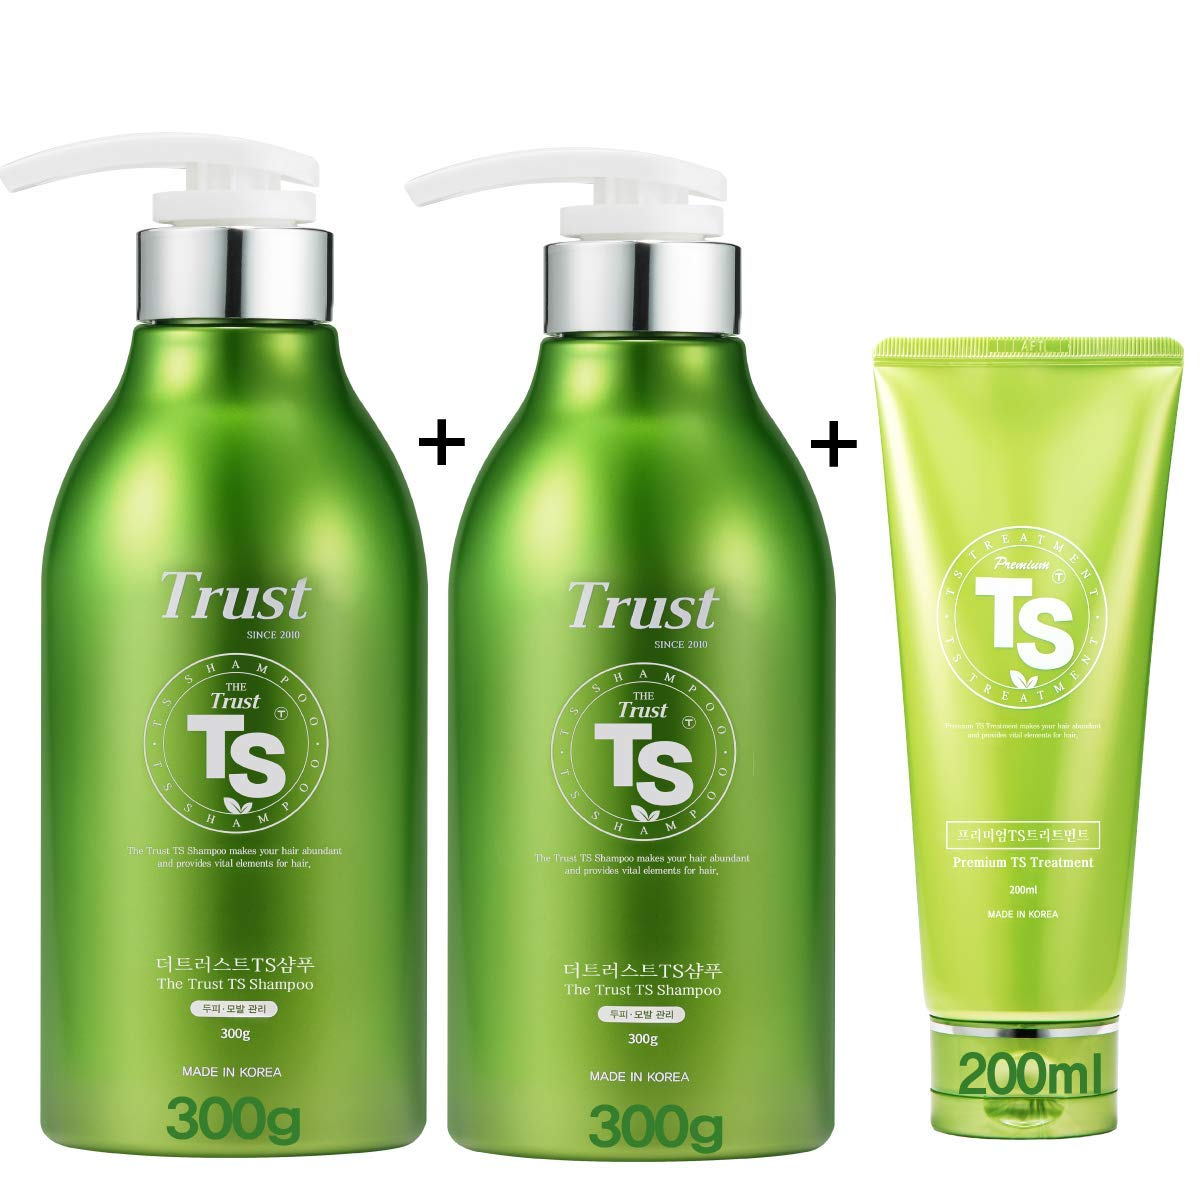 TS Shampoo Promotion Set [ The Trust Shampoo 300ml (10 oz) x 2ea, Premium TS Treatment 200ml (6.76oz) ], Top Selling Hair Loss Prevention Shampoo from Korea